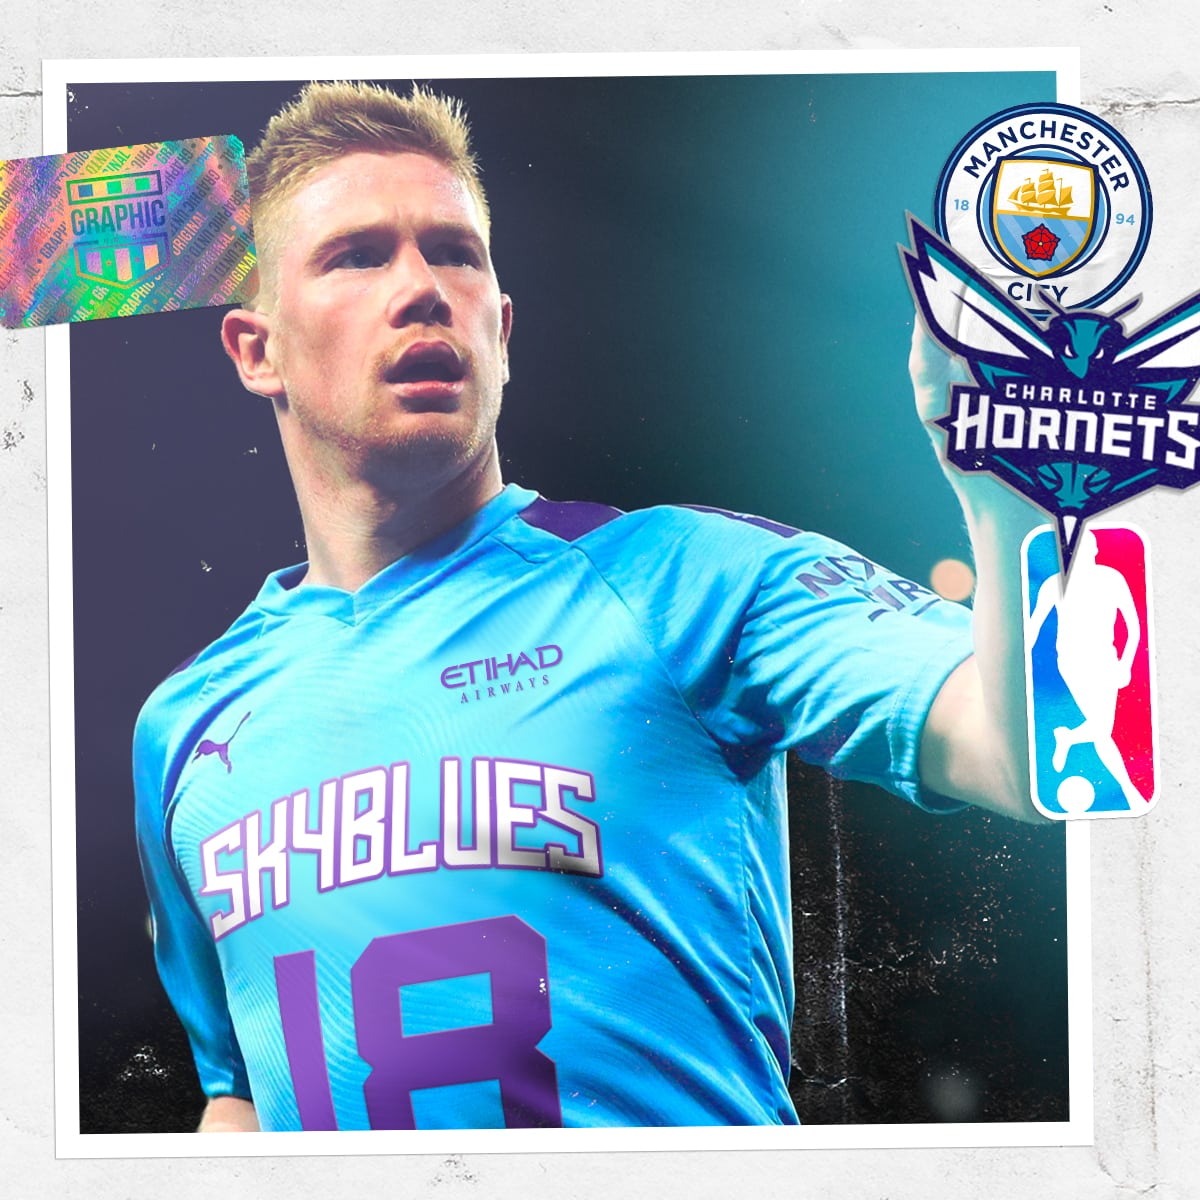 maillot-foot-nba-graphic-untd-manchester-city-charlotte-hornets